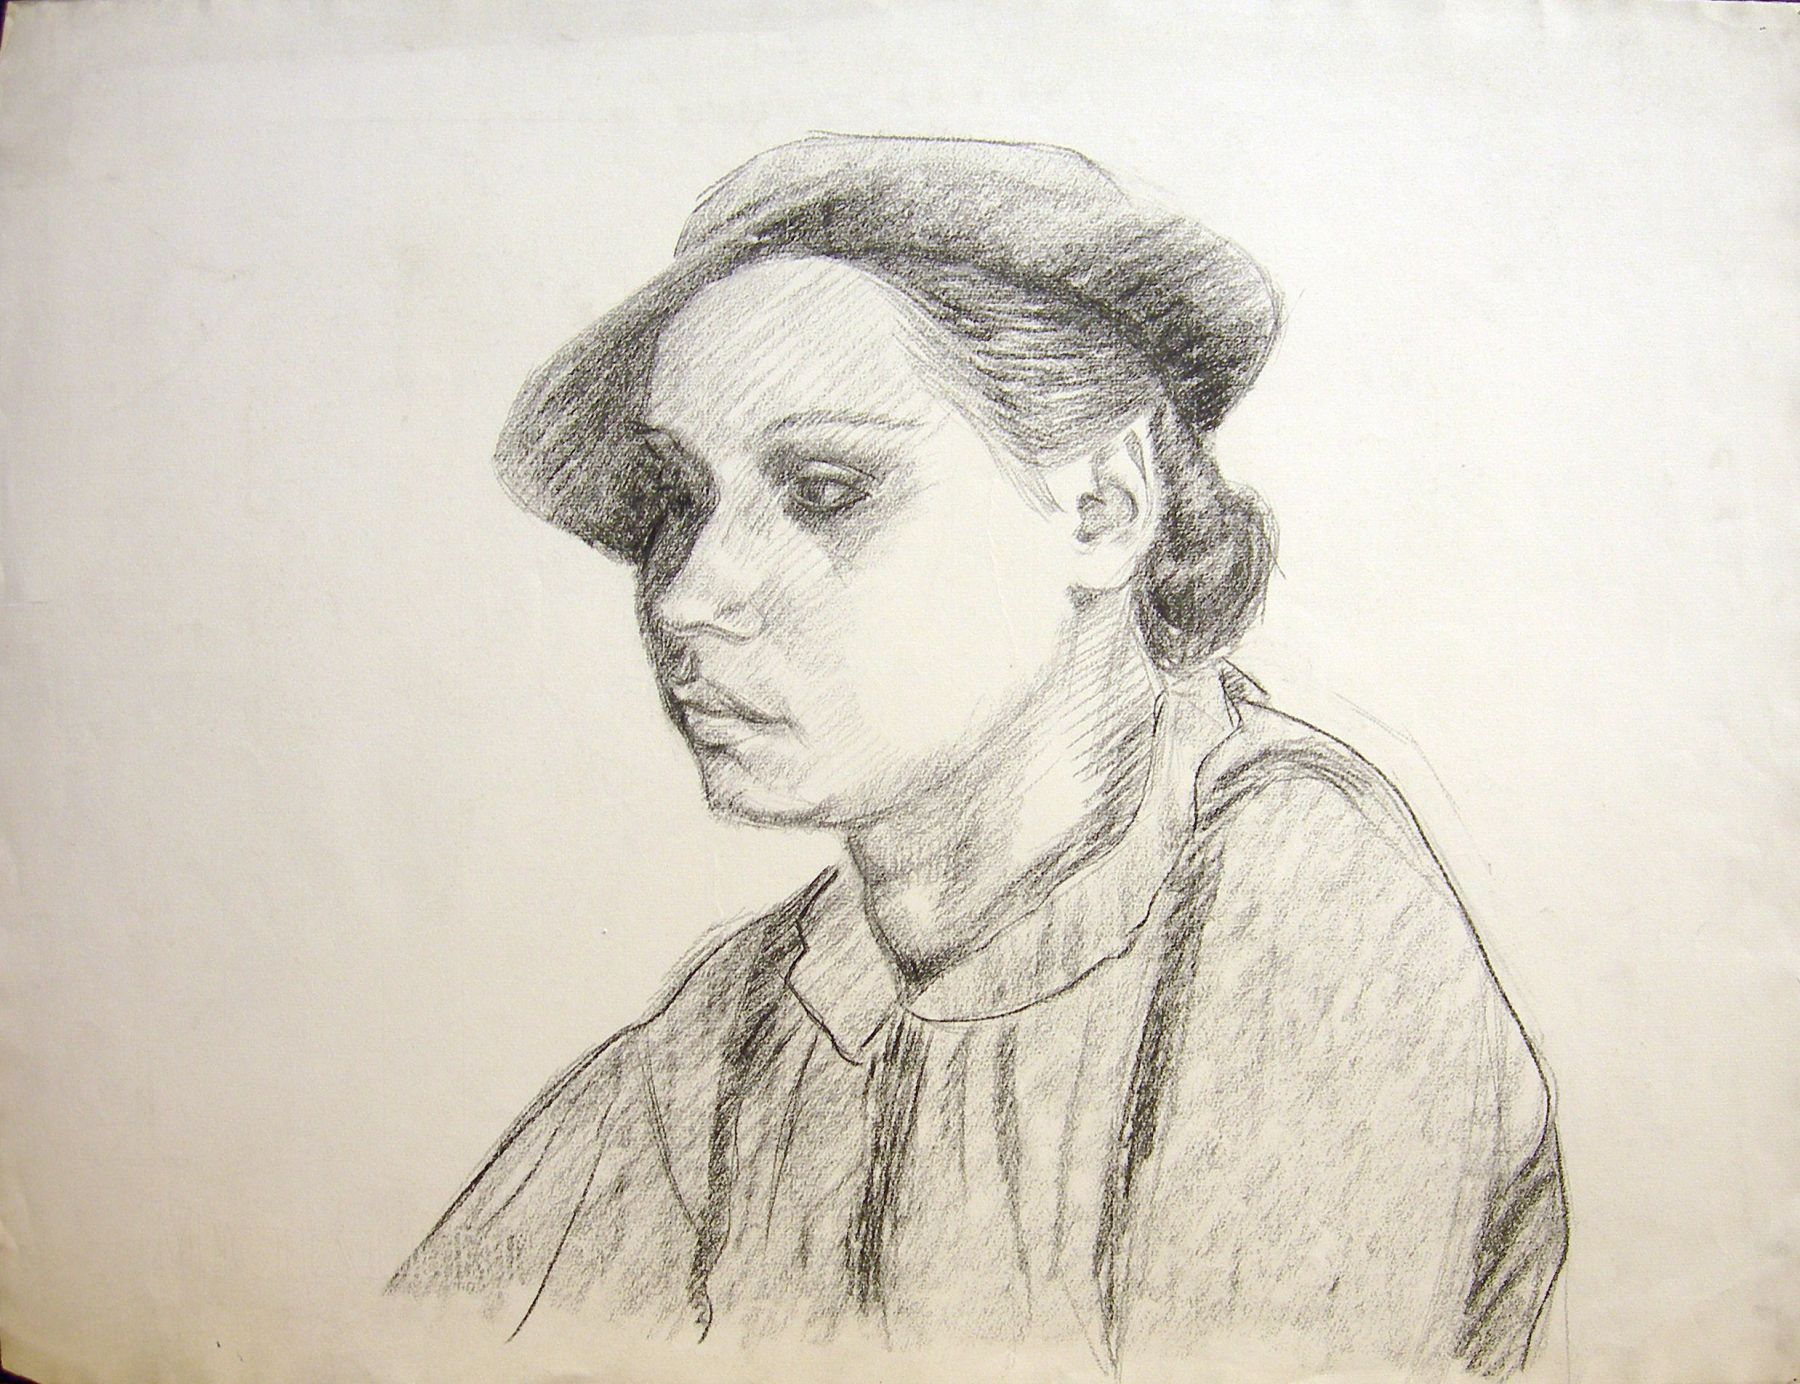 Untitled (Portrait of Florence), c. 1930, Charcoal on paper